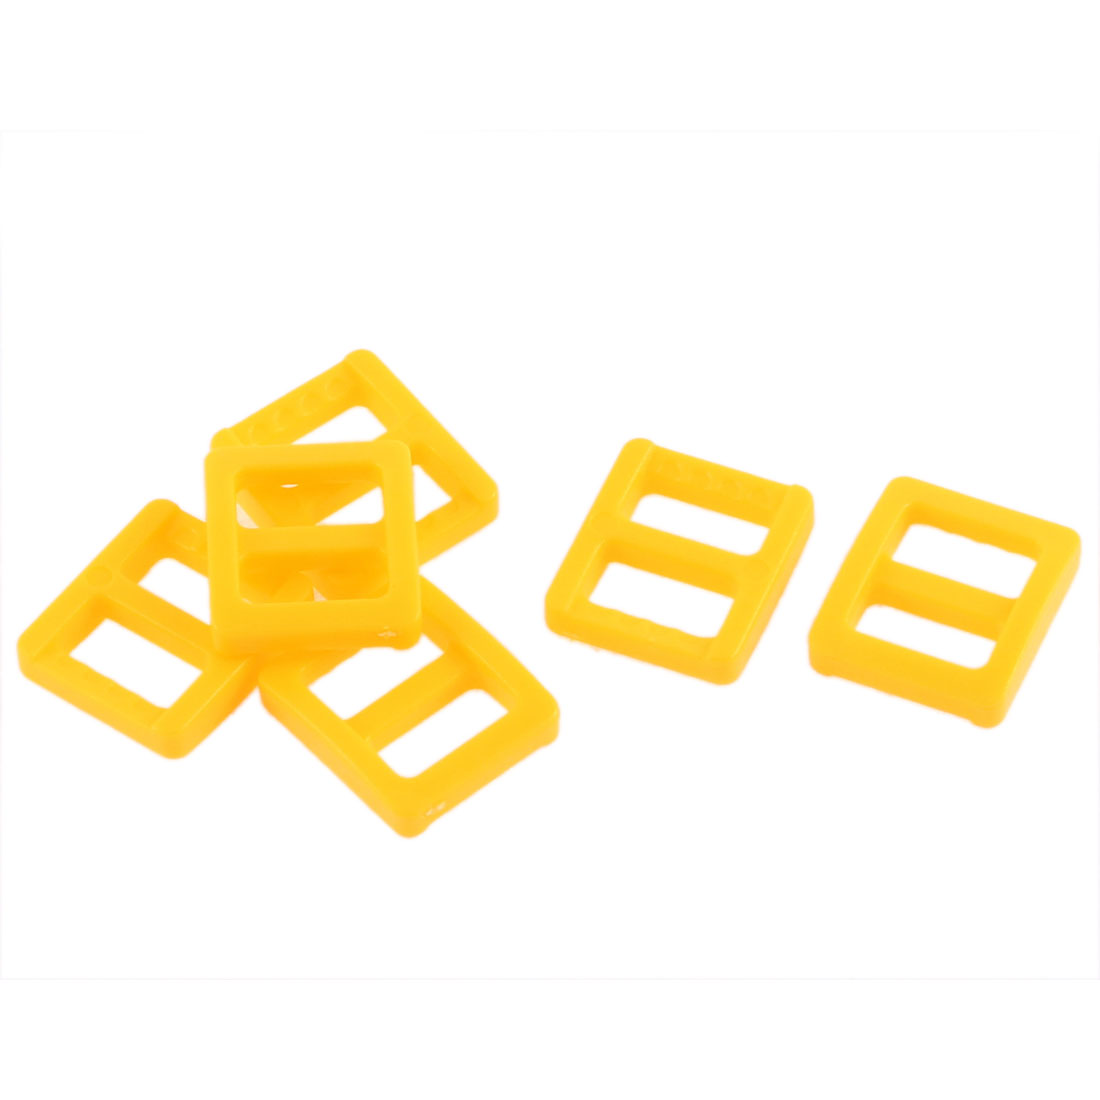 Backpack Handbag Hard Plastic Repairing Tool Tri Glide Buckle Yellow 6 Pcs